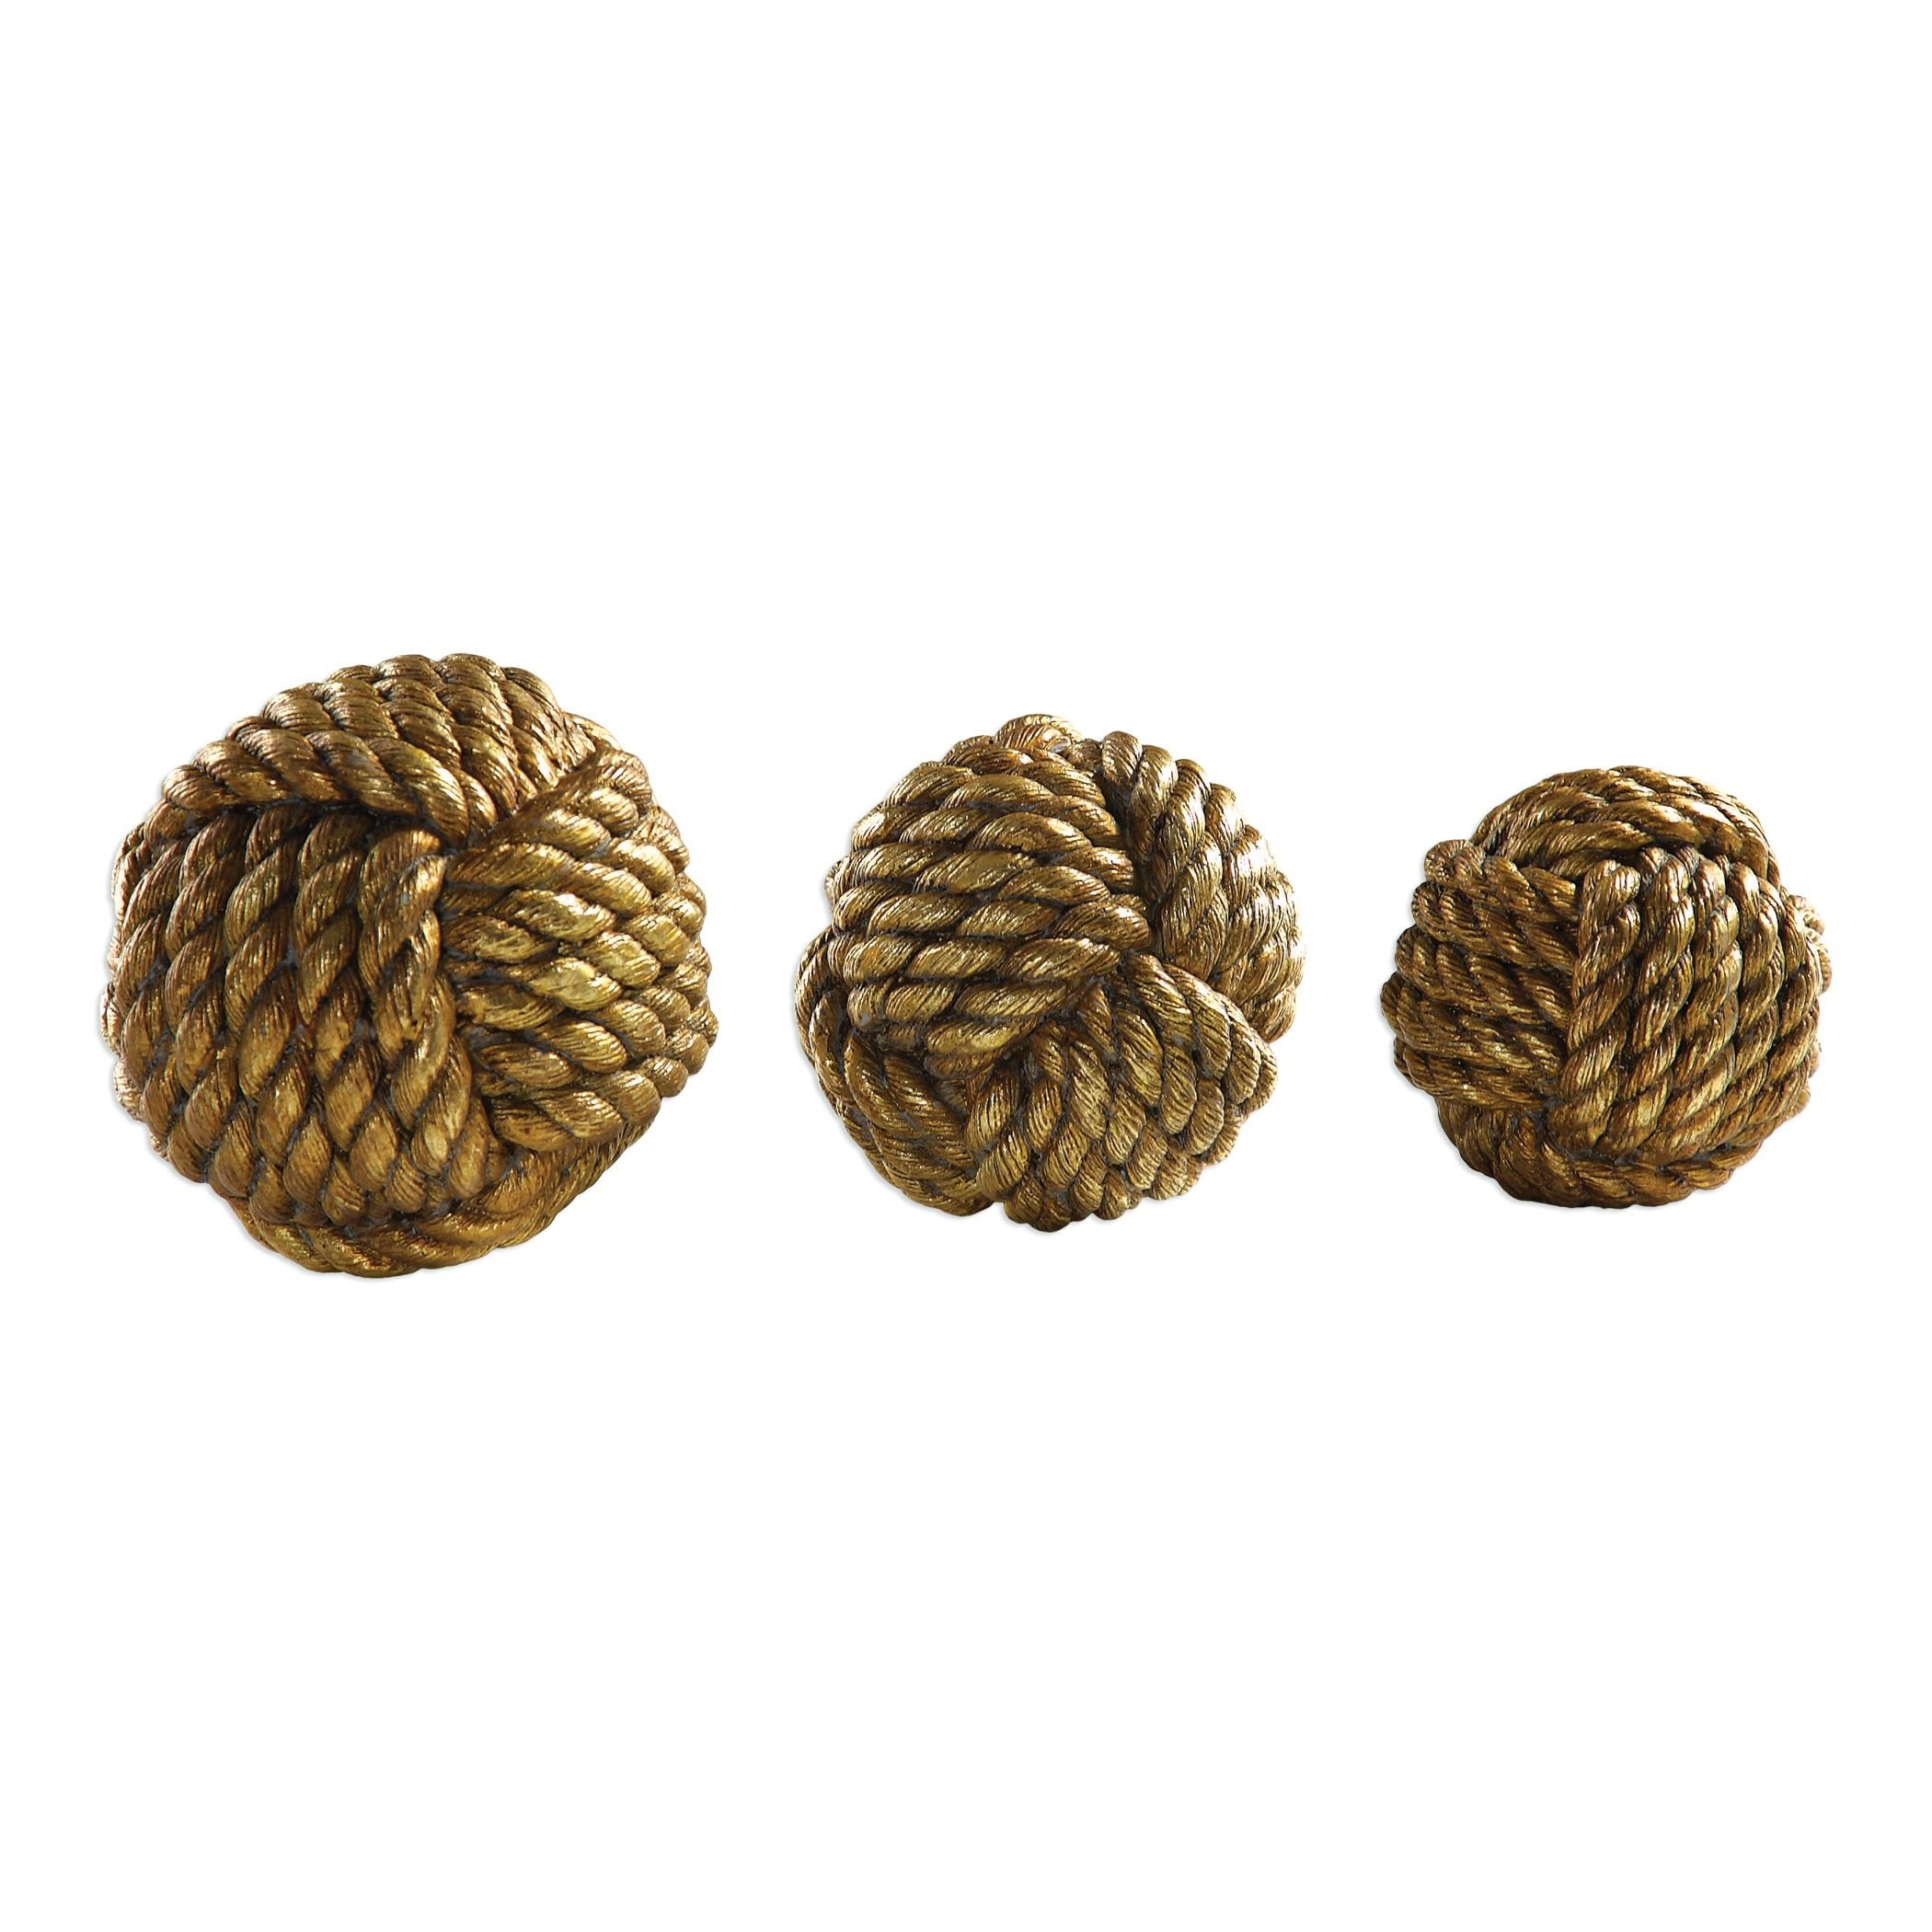 Set 3 Gold Brass Rope Decorative Spheres | Paperweight Sculpture Ball by My Swanky Home